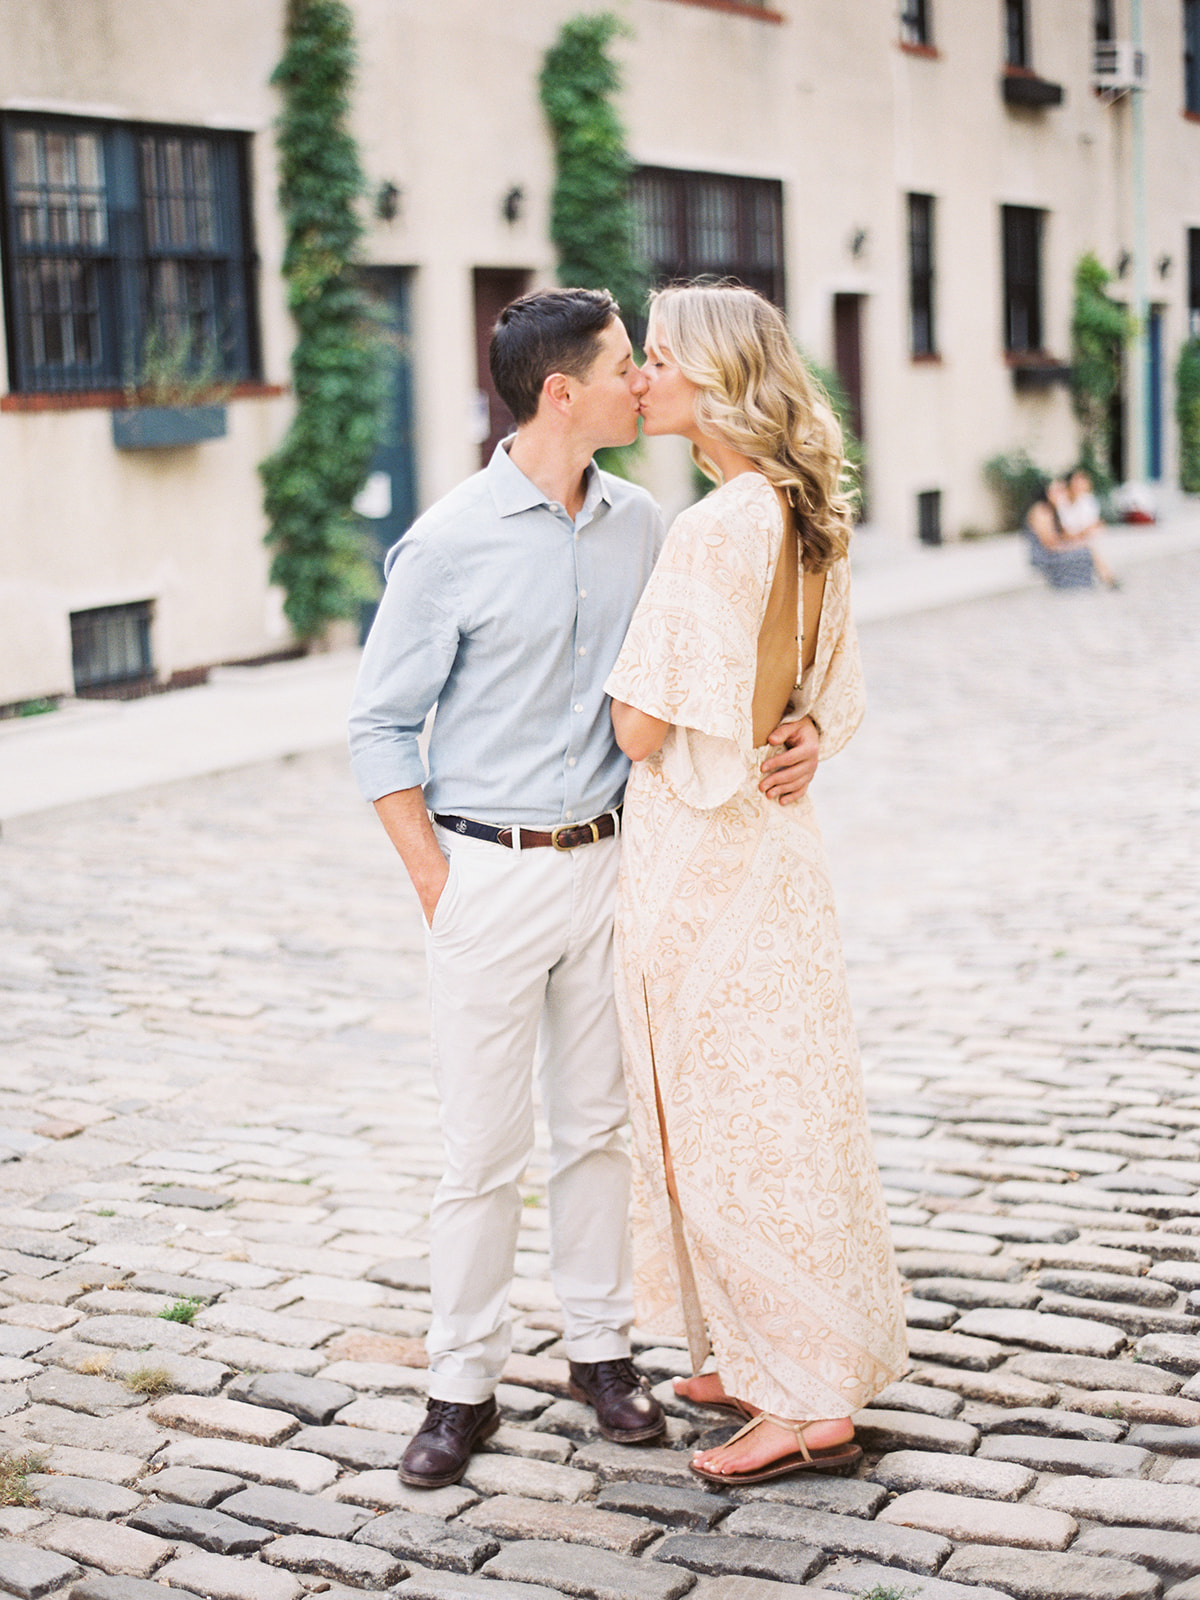 New York City Engagement Photos with Rachel May Photography-92317-195.jpg